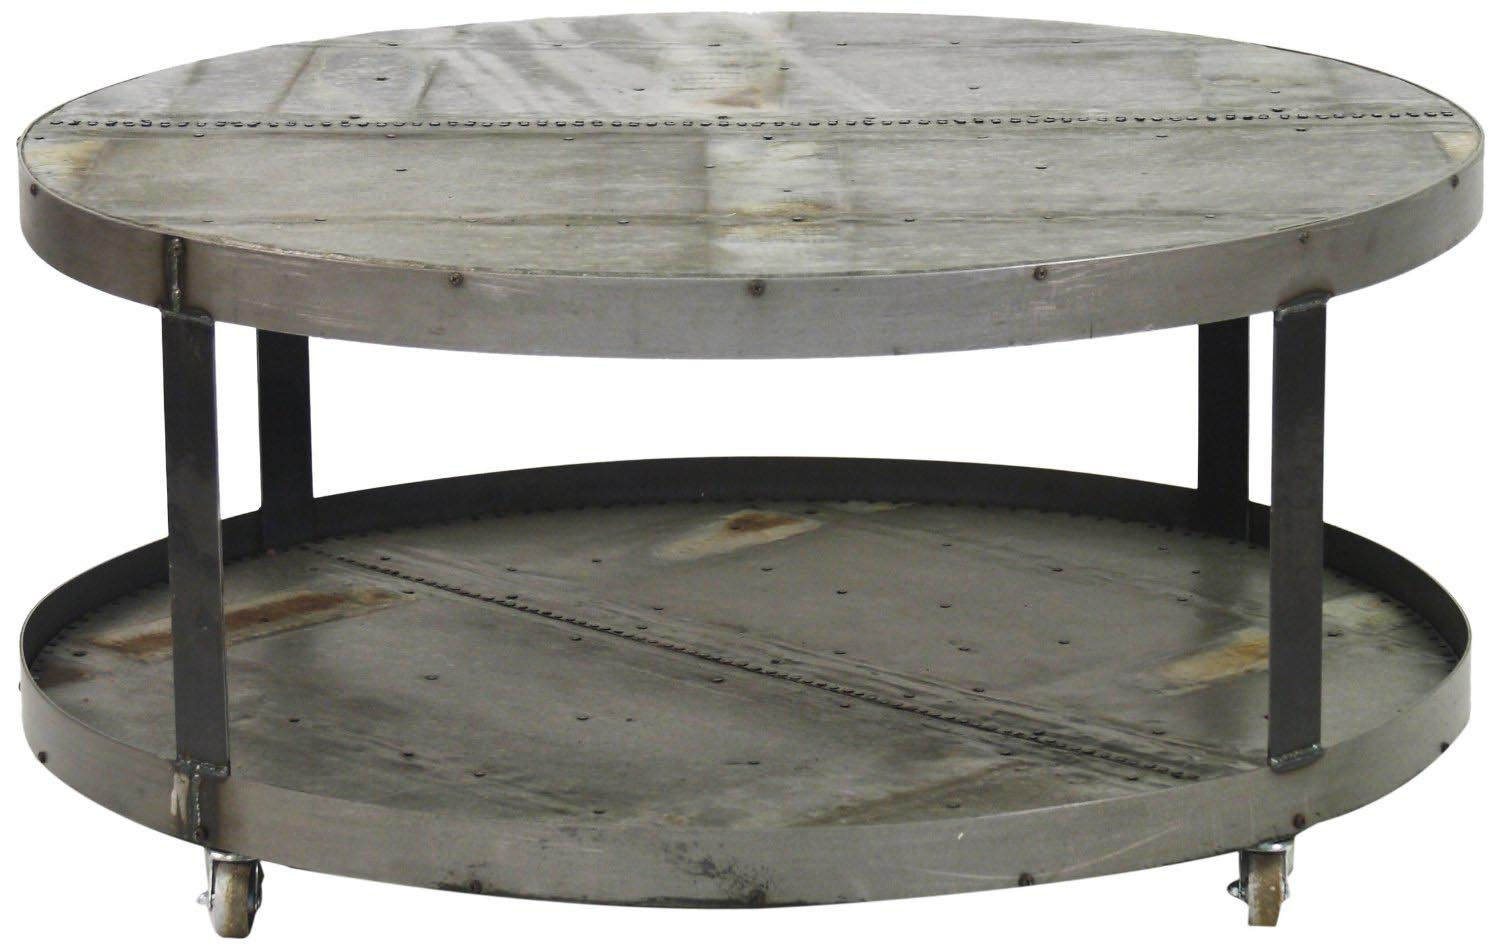 Oversized Round Coffee Table Coffee Table Design Ideas